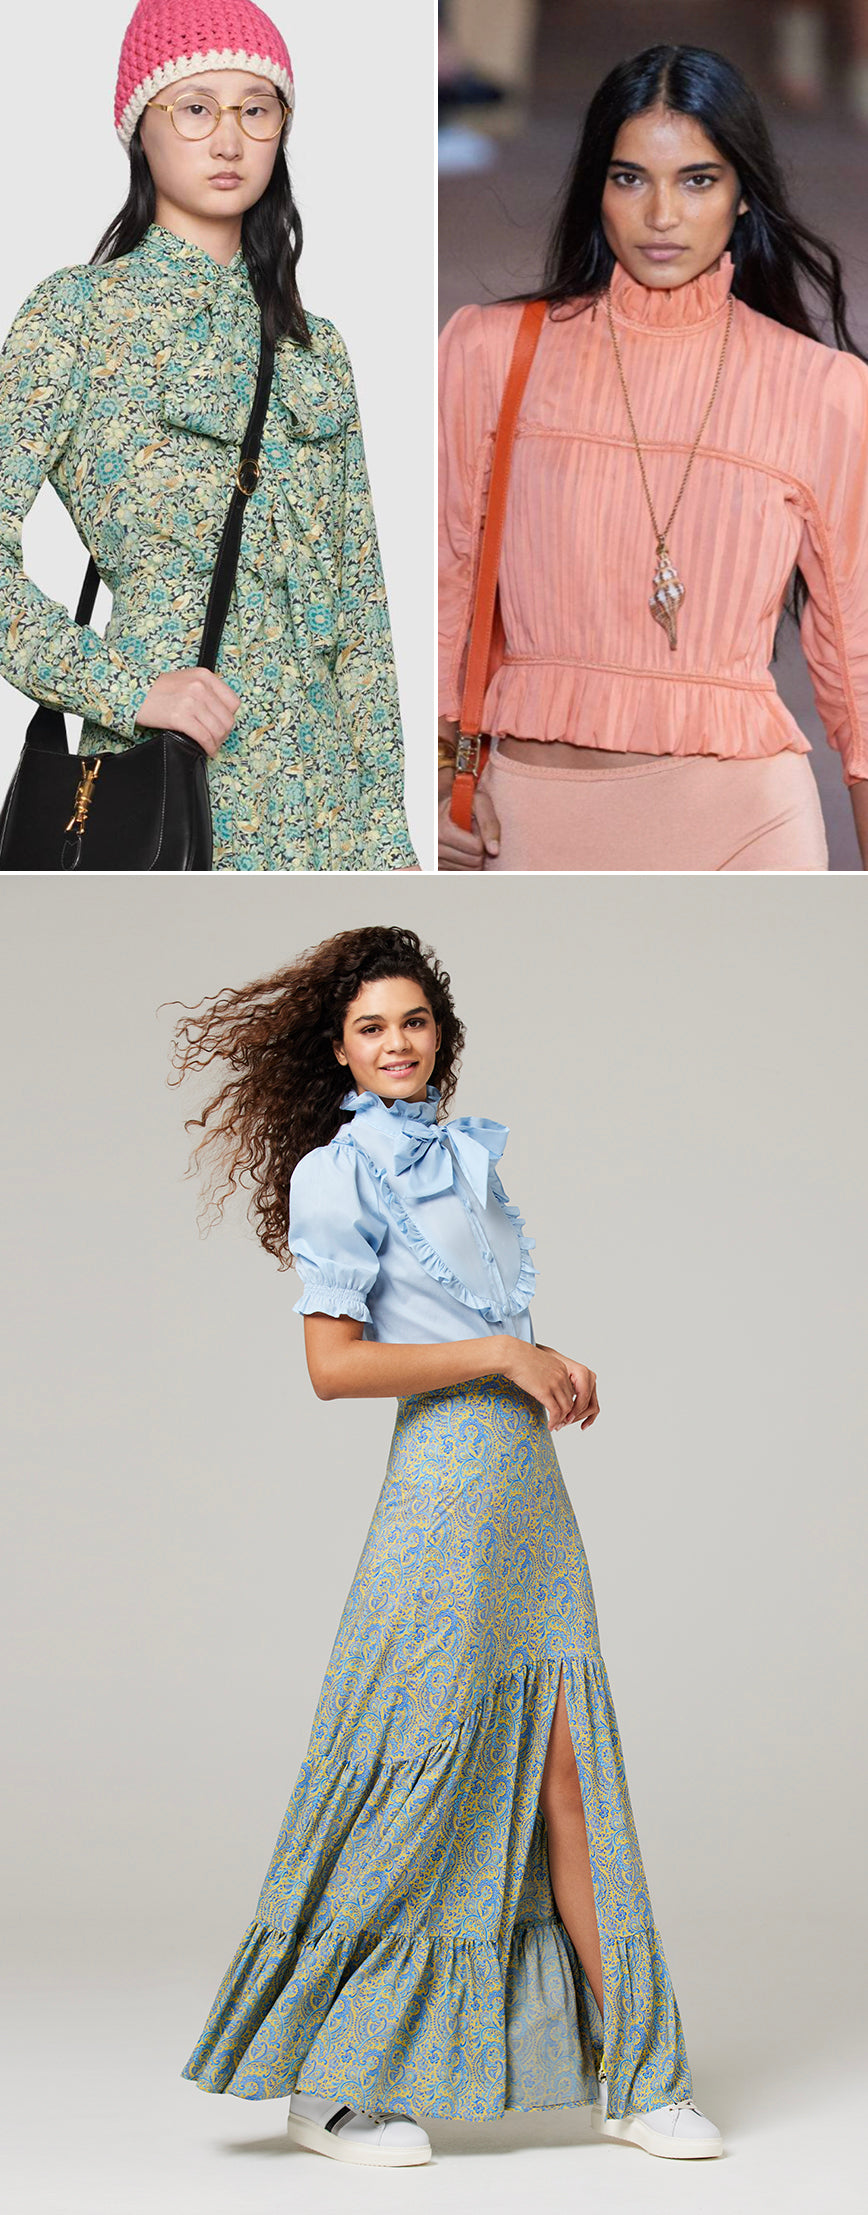 ridleylondon-luxury-silk-and-cotton-pussy-bow-ruffle-blouses-spring20201